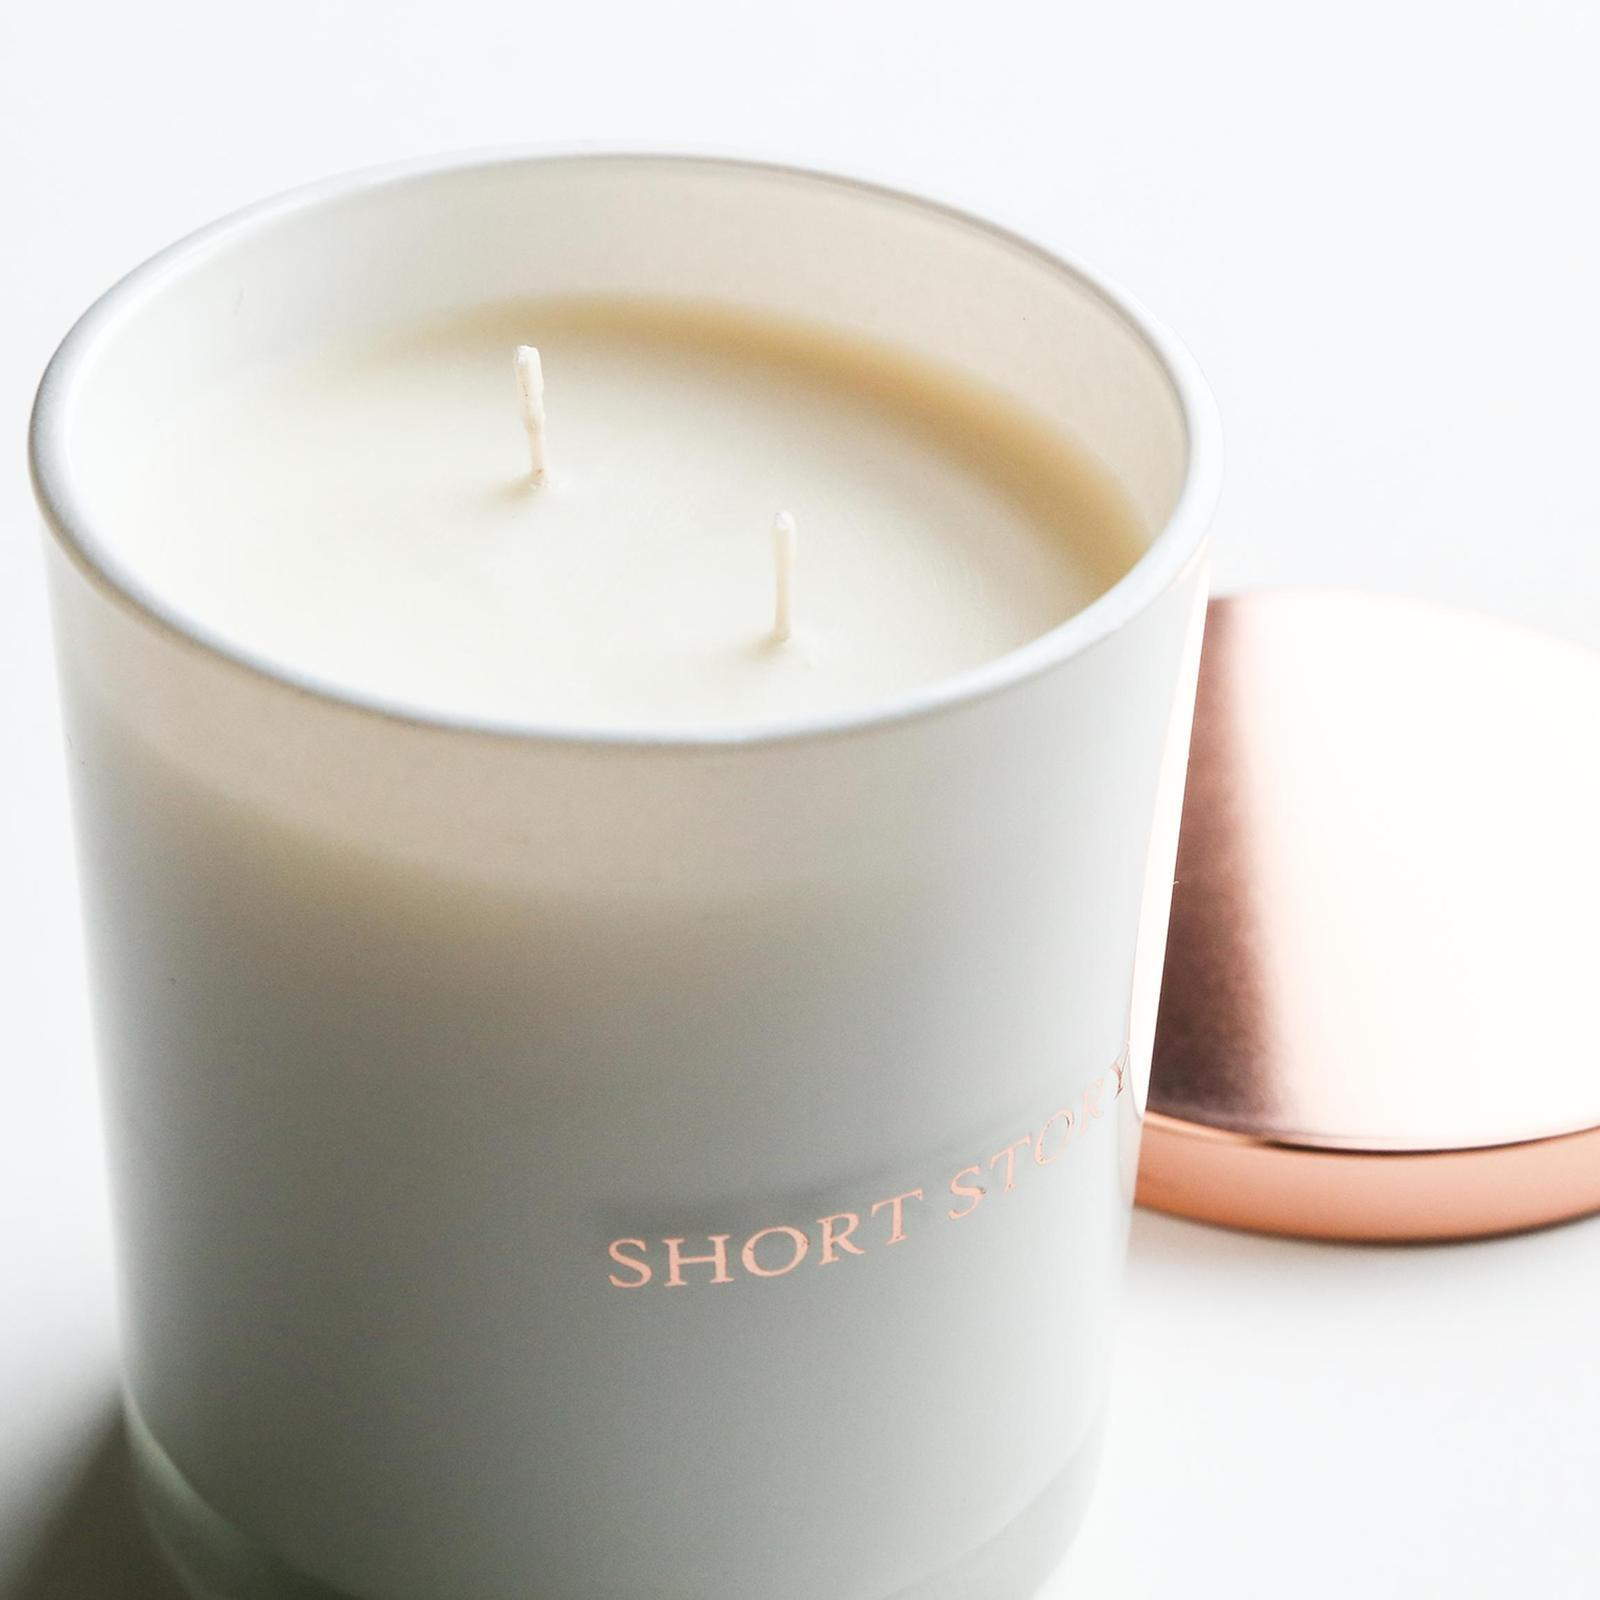 Short Story: Triple Scented Soy Candle - Leonardo (Blackcurrant Bliss) image